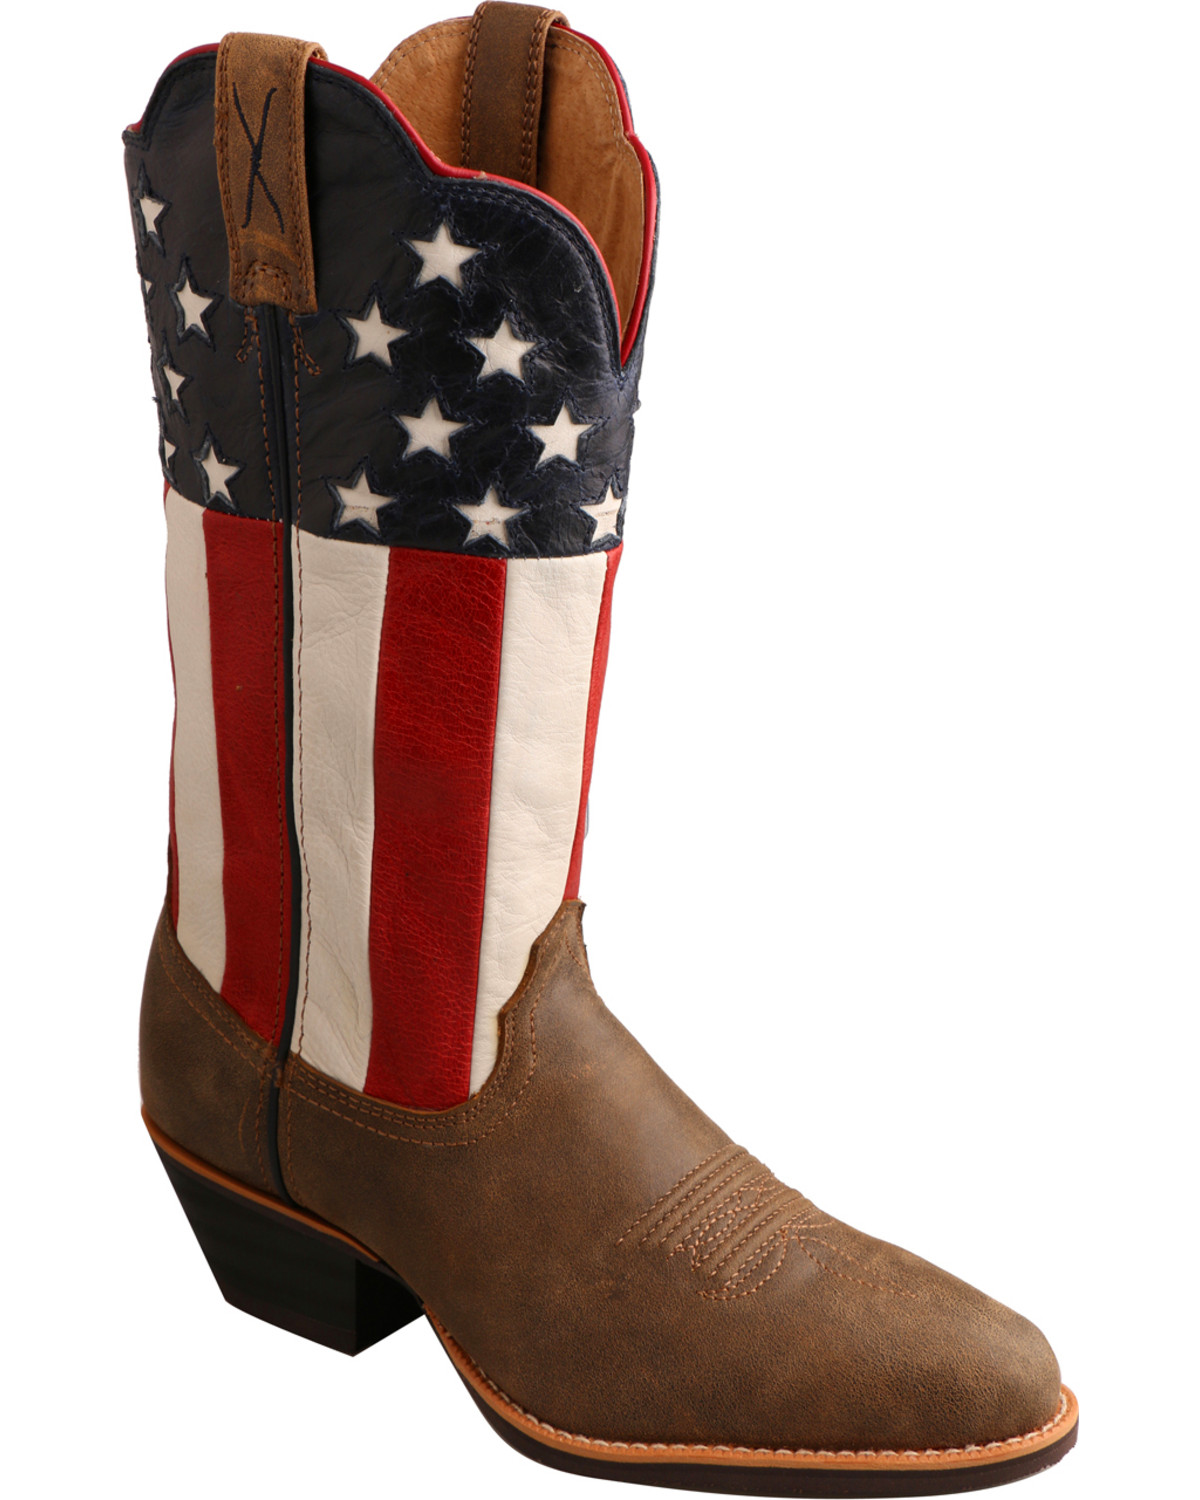 Bathroom scales boots - Twisted X American Flag Western Cowgirl Boots Round Toe Bomber Hi Res